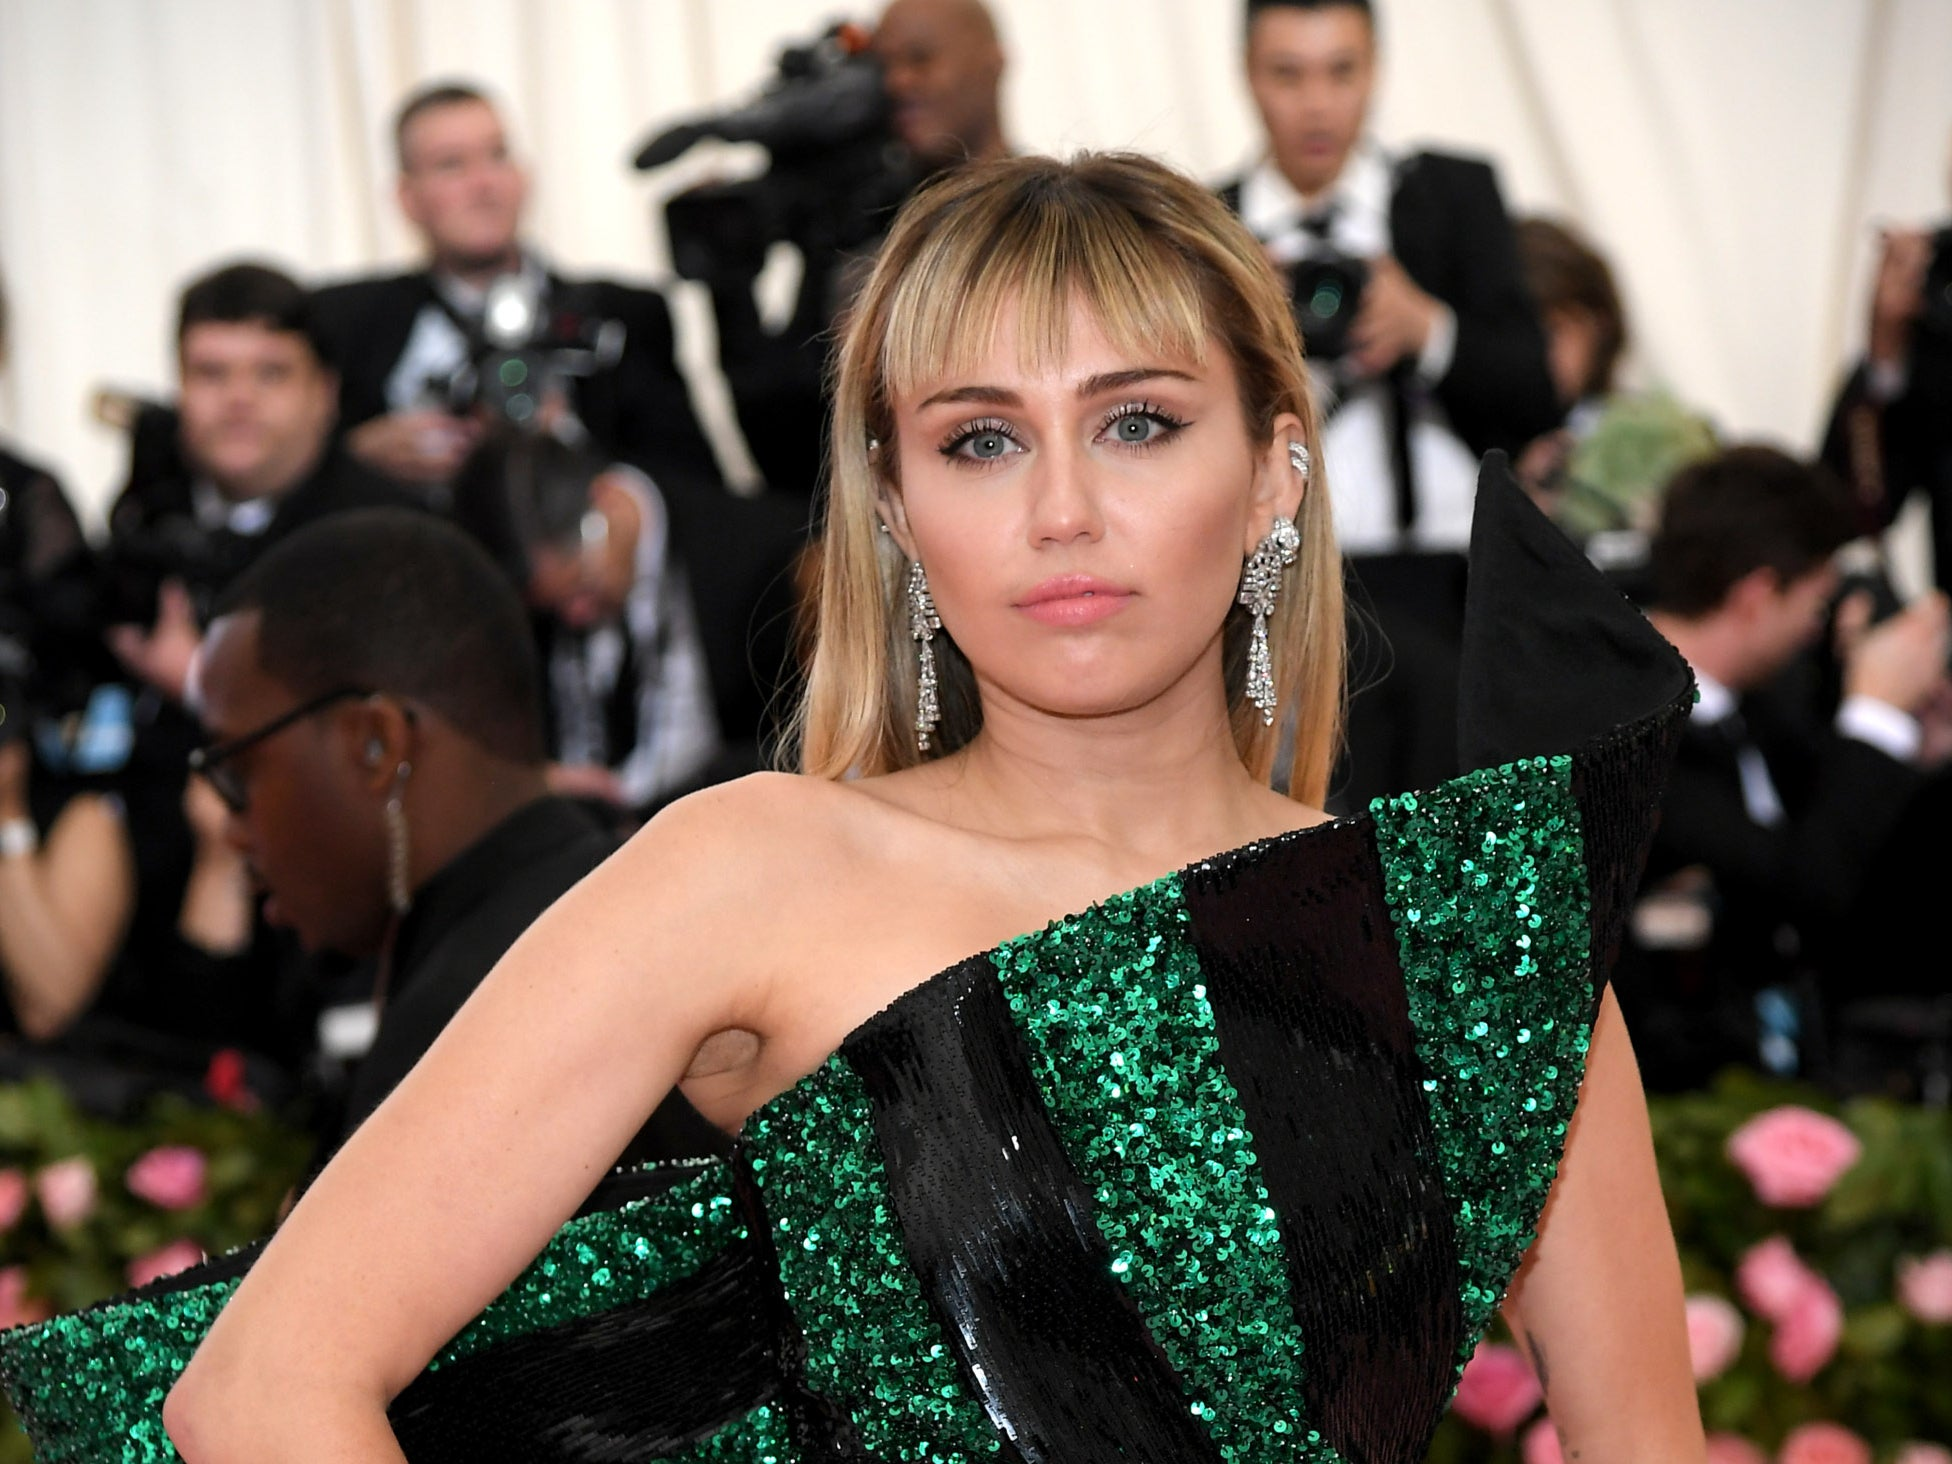 Miley Cyrus says she 'luckily didn't go back to drugs' after breaking sobriety during lockdown